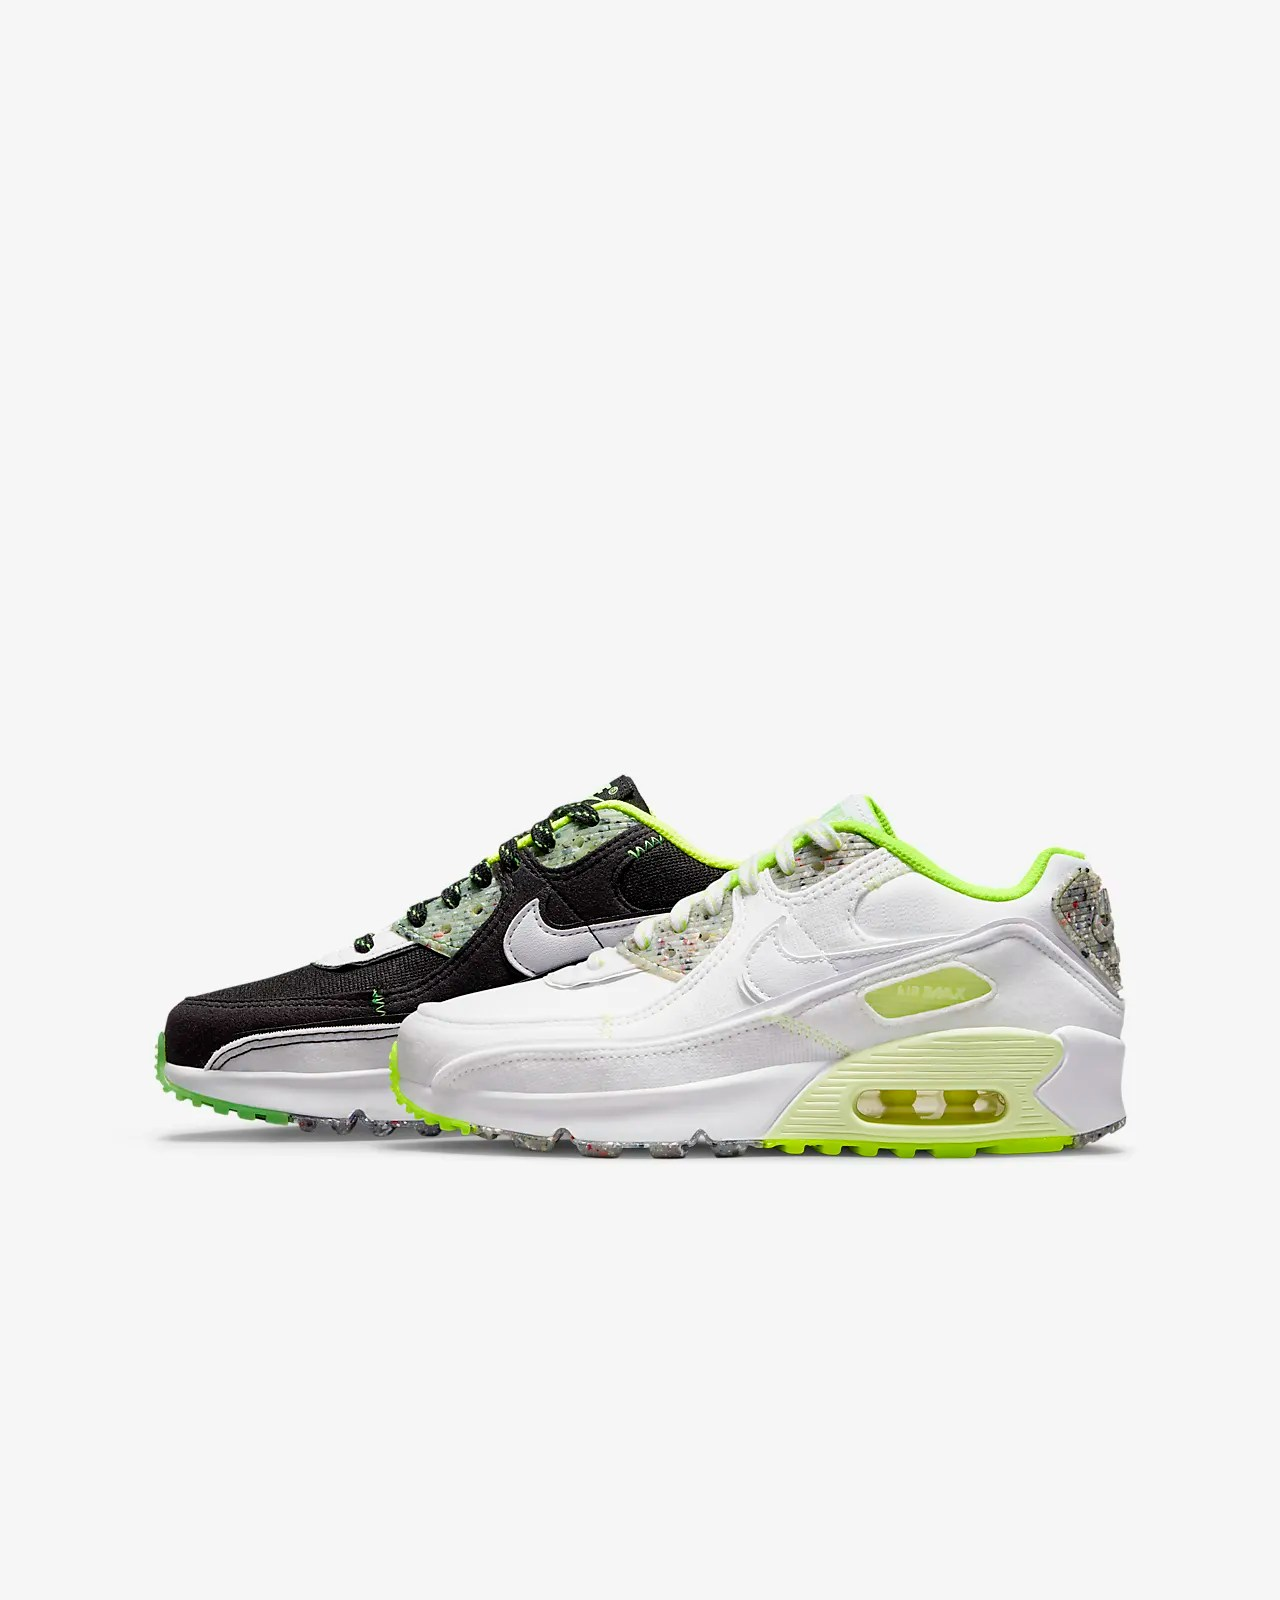 GS Nike Air Max 90 Exeter Edition